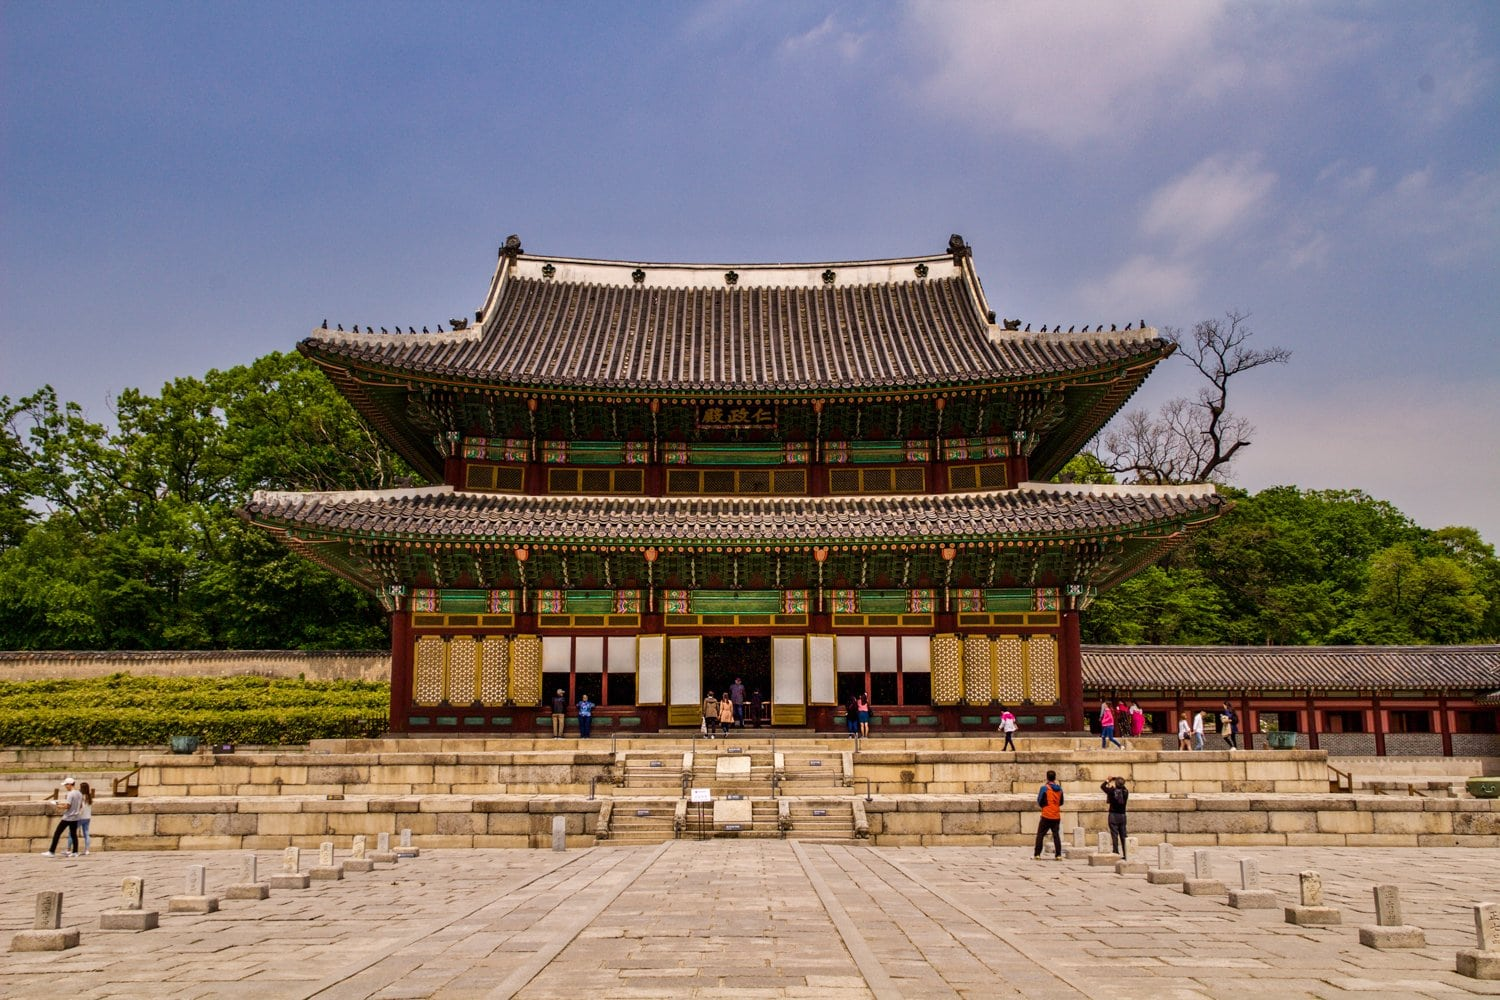 Have you ever been to Seoul, Korea? If you're limited on time, there are 5 things you must do in Seoul. One of them may include crossing into North Korea... Read more at www.thefivefoottraveler.com